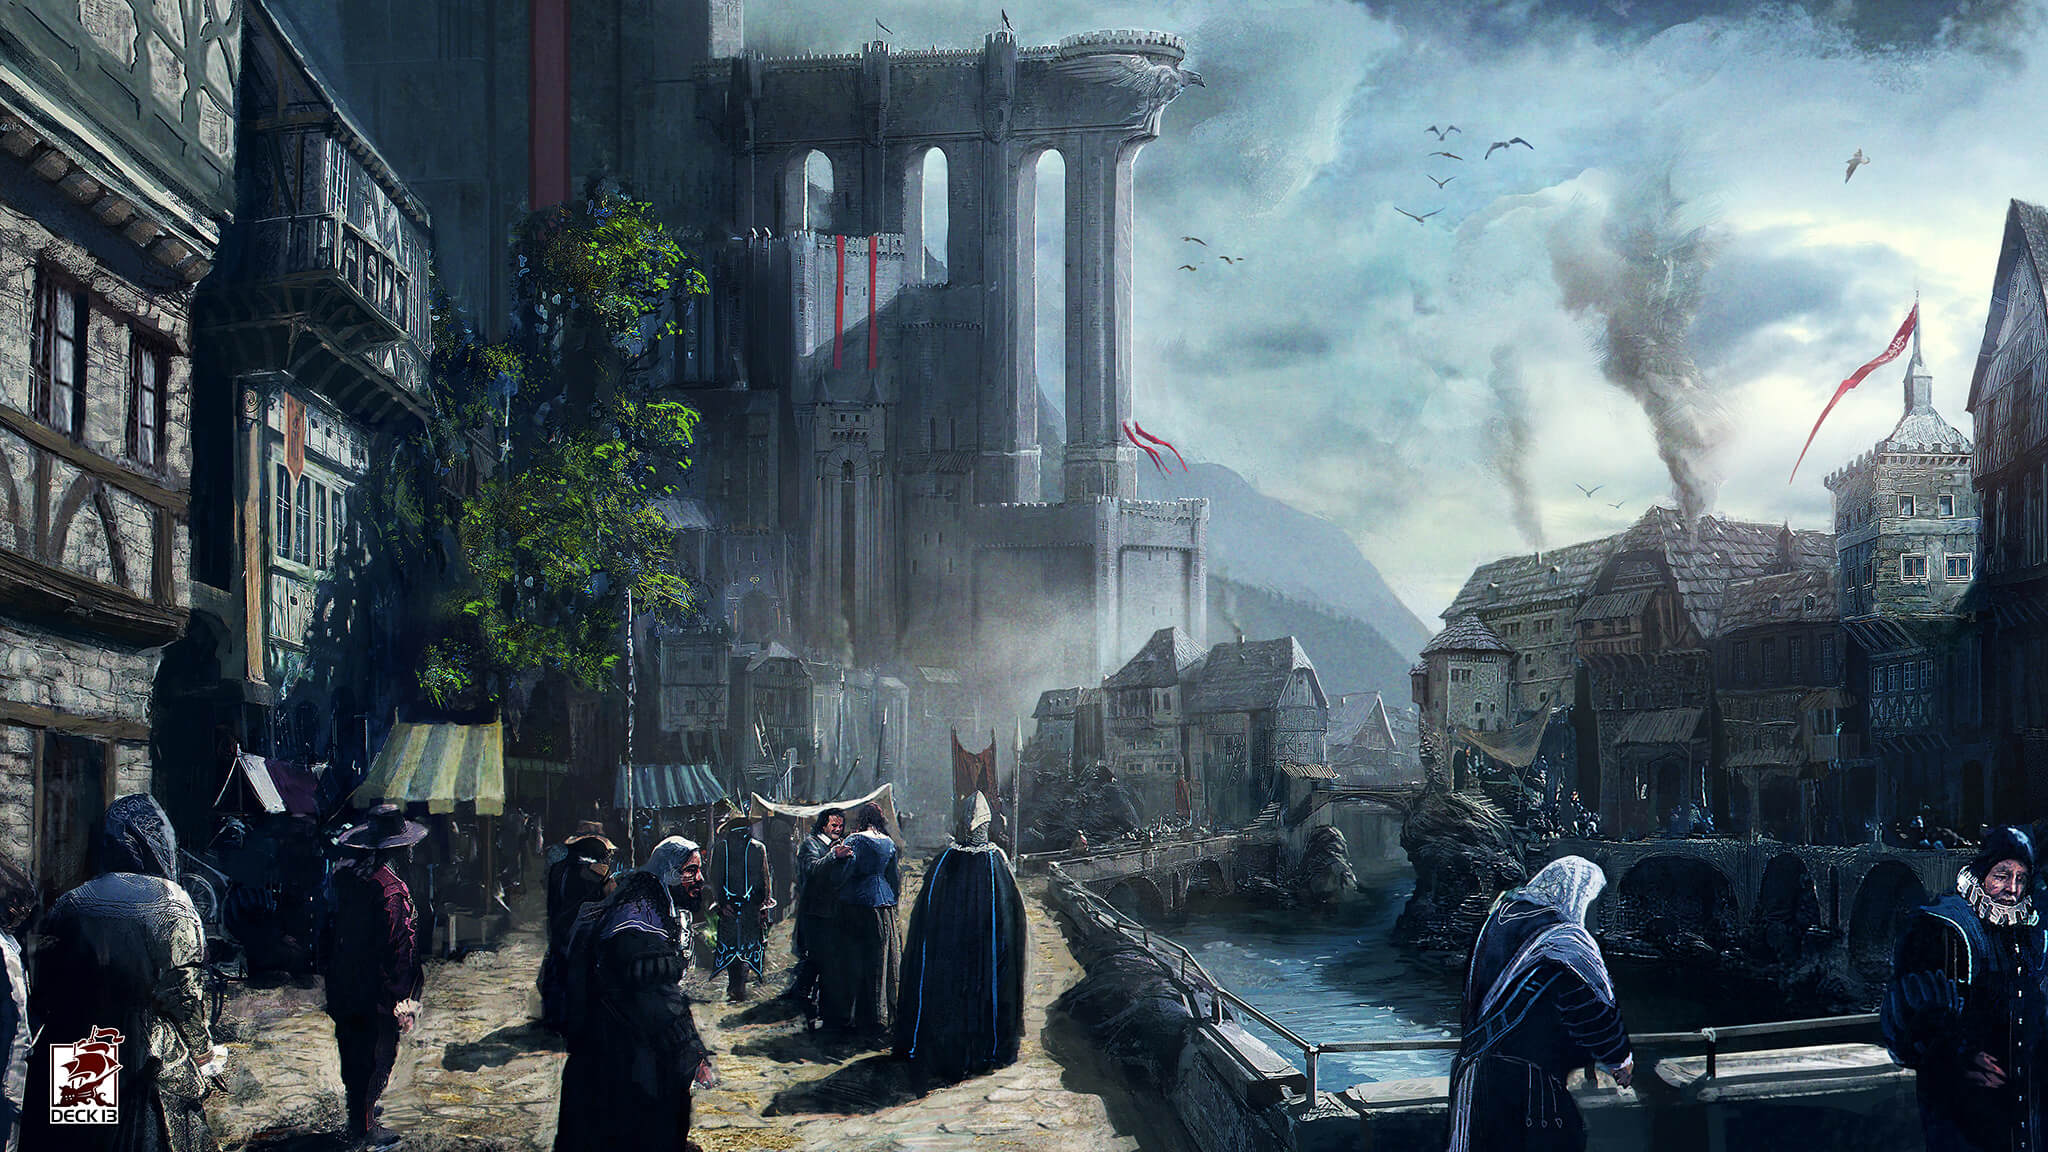 Dead-god-deck13-felix-botho-haas-concept-art-northern_city10